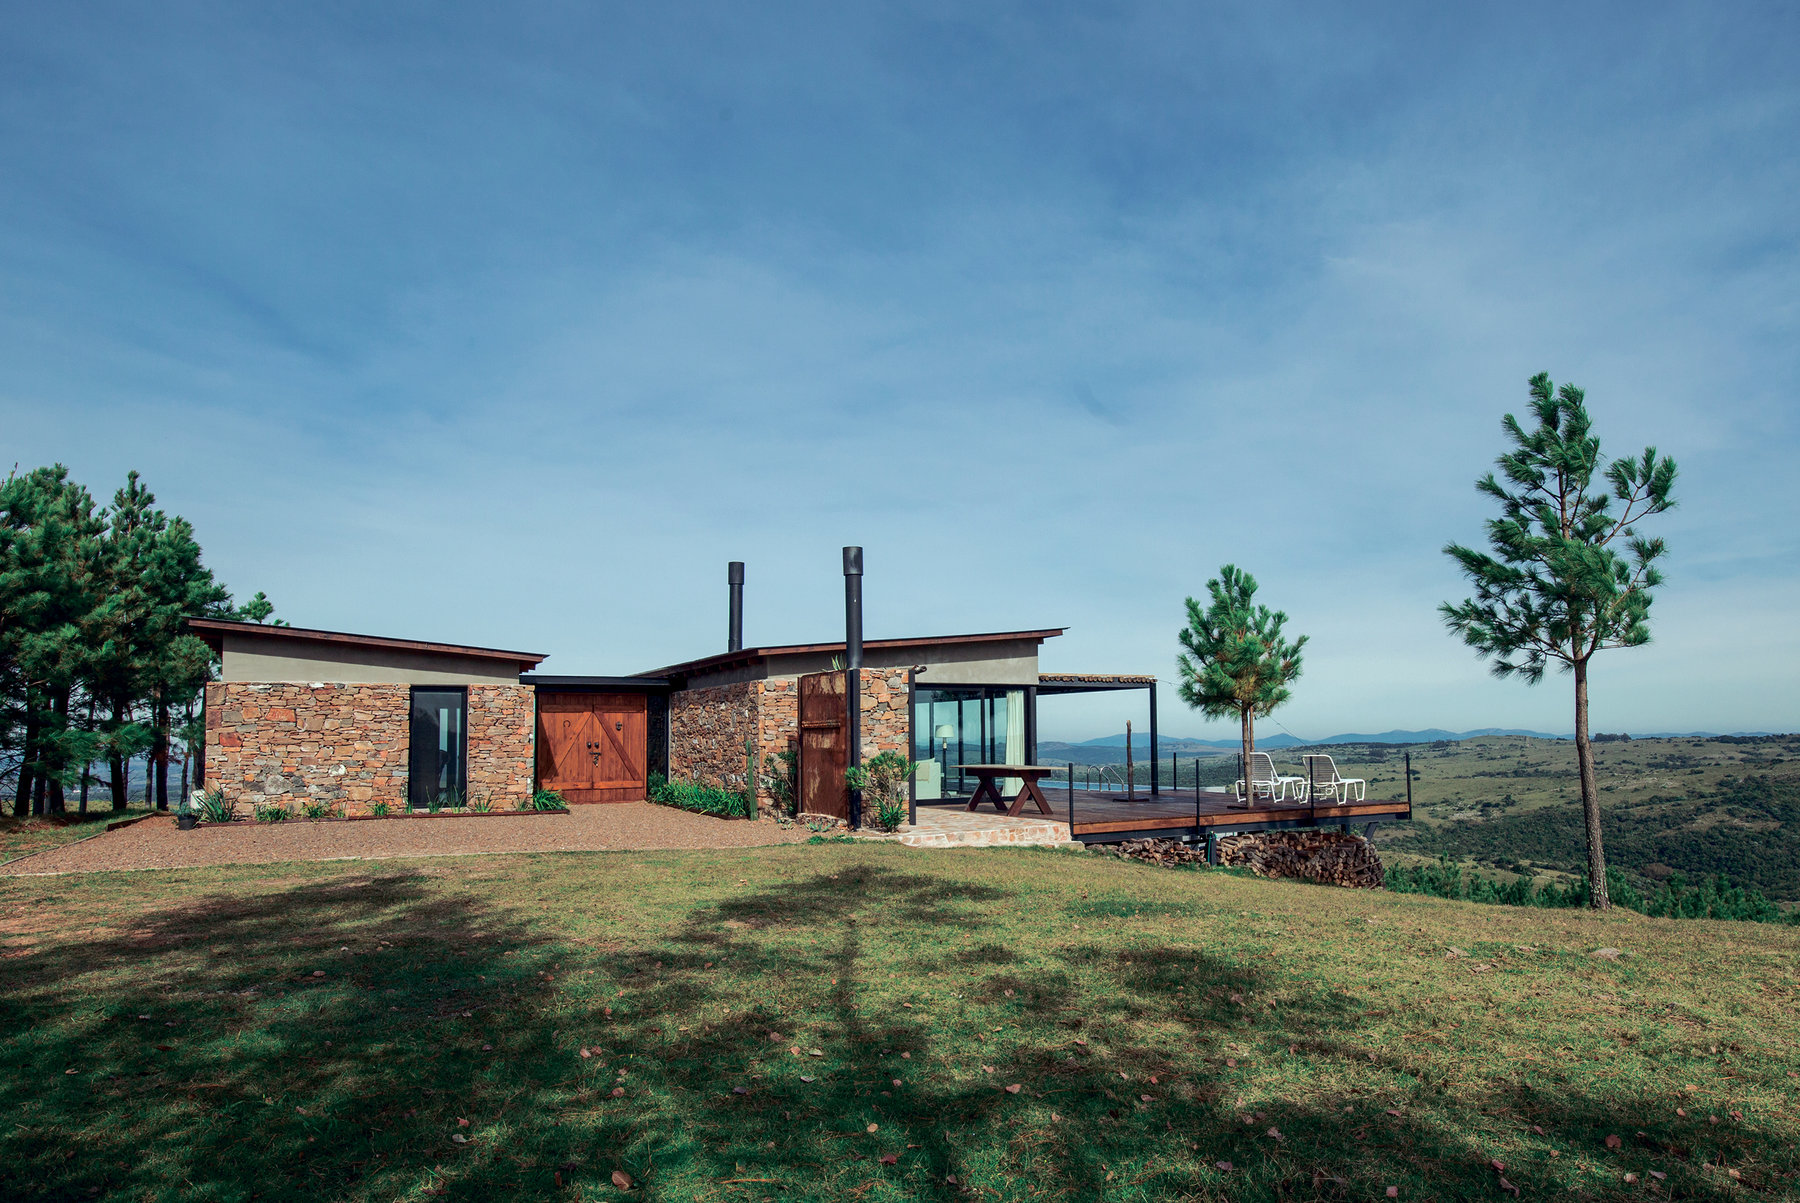 House Hunting In Uruguay A Modern Ranch On 12 Acres For 390 000 The New York Times